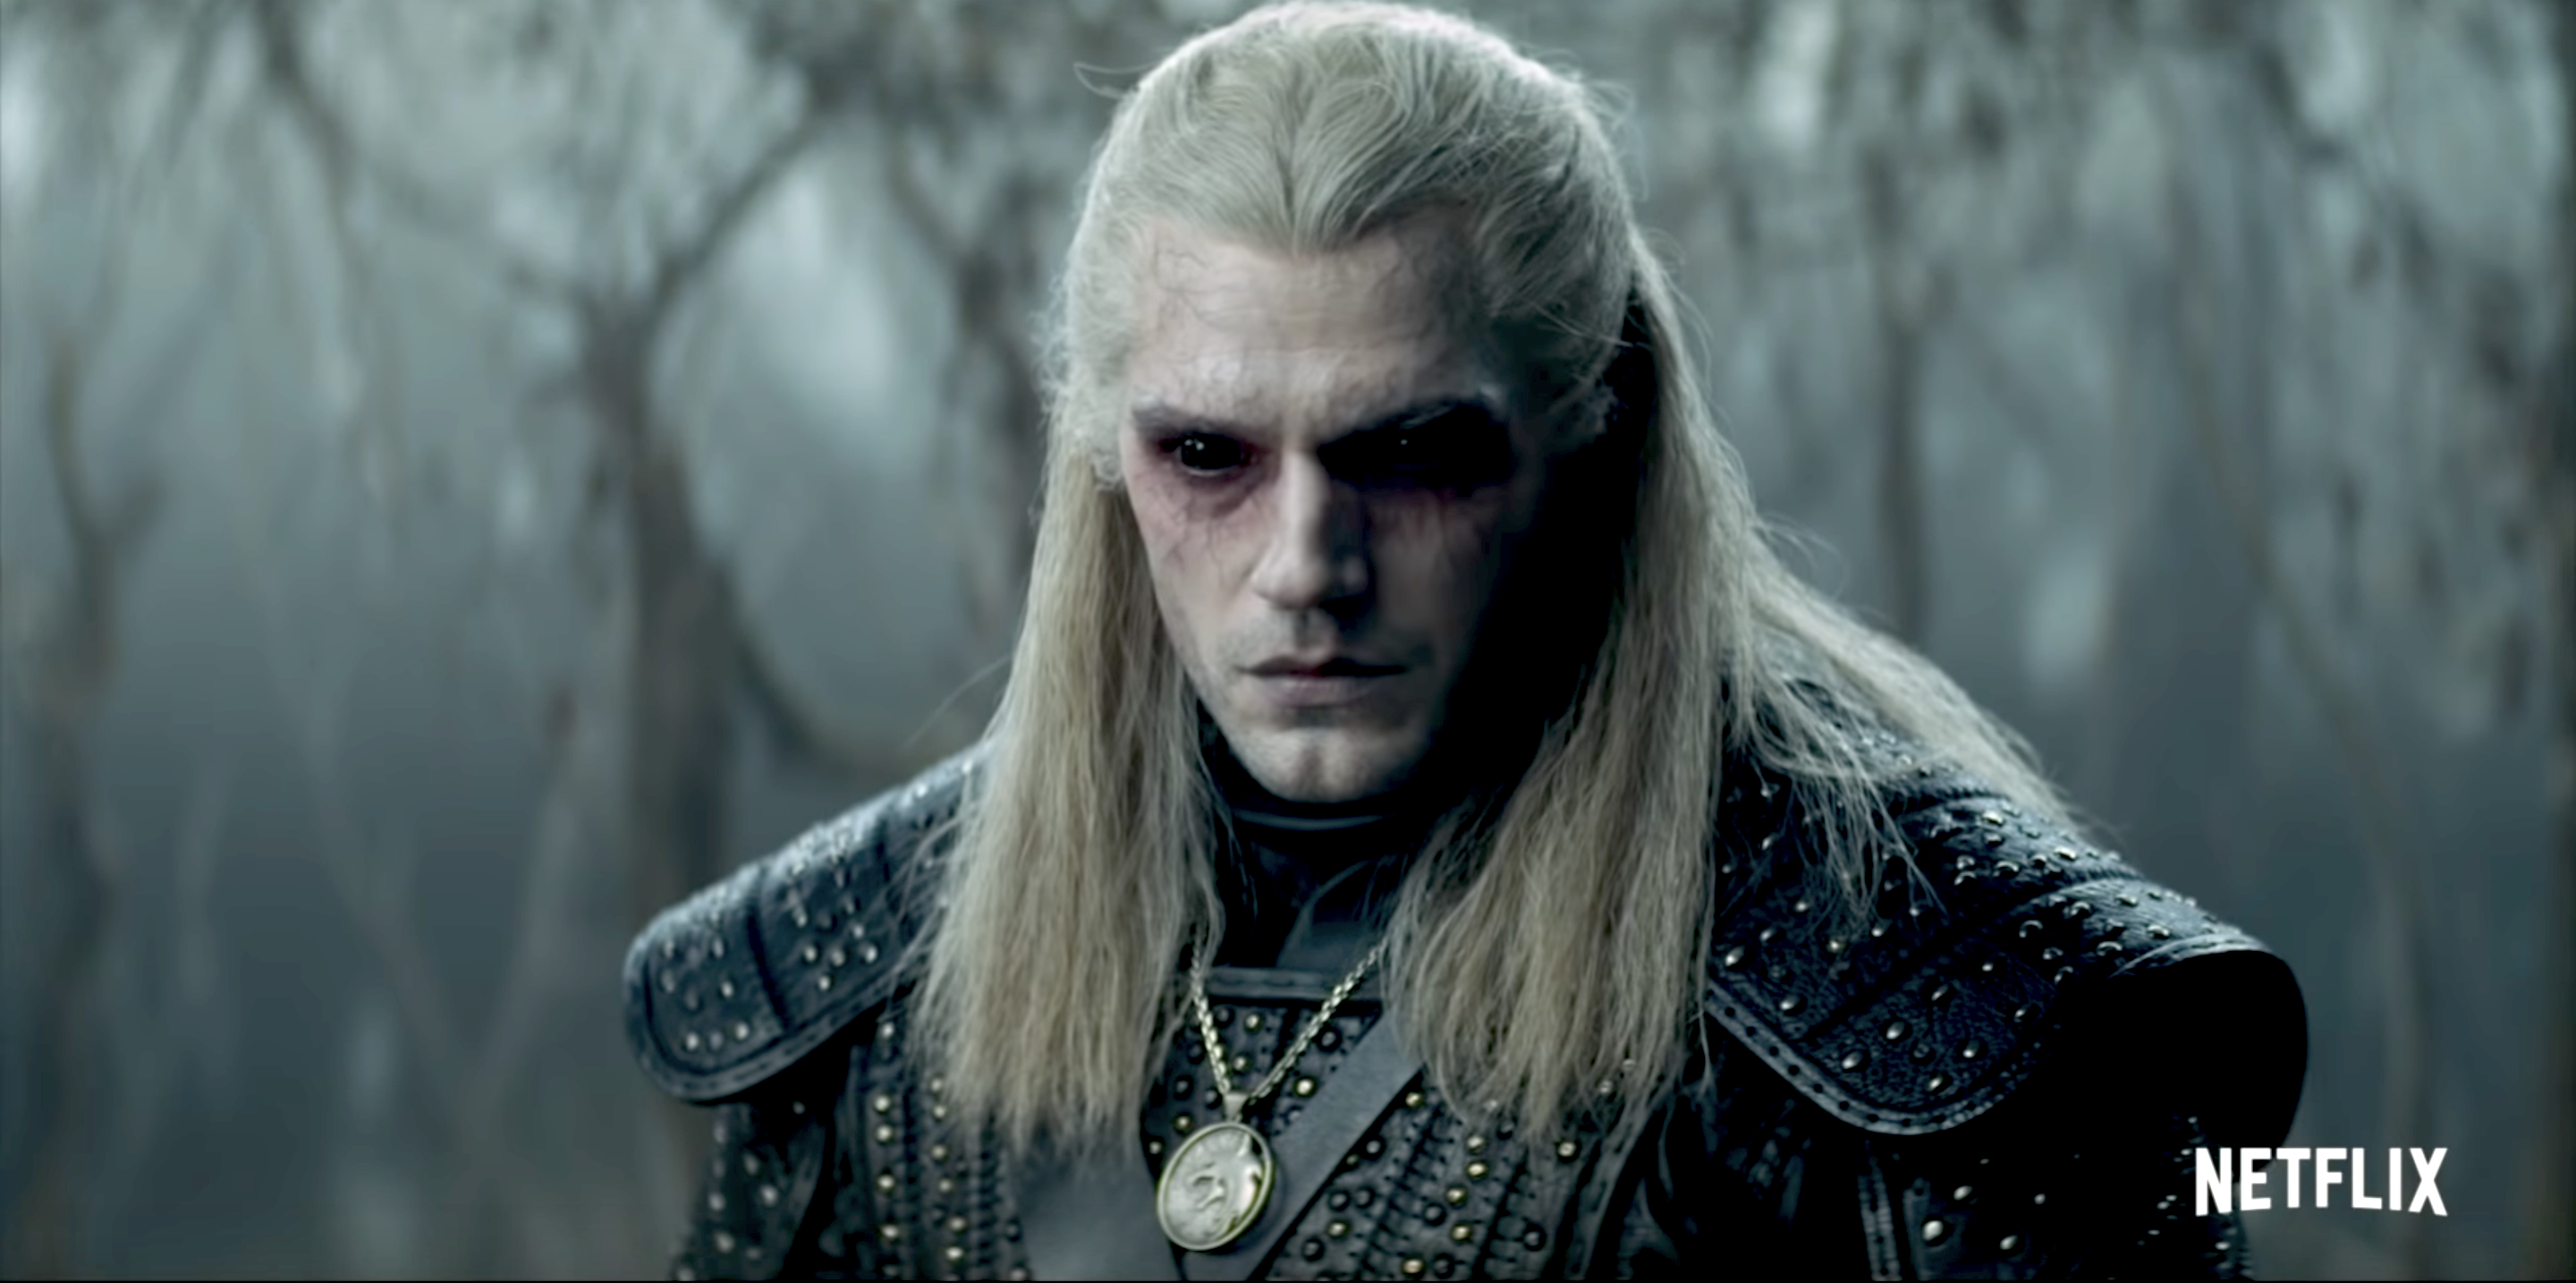 Netflix may have accidentally leaked The Witcher and You season 2 release dates